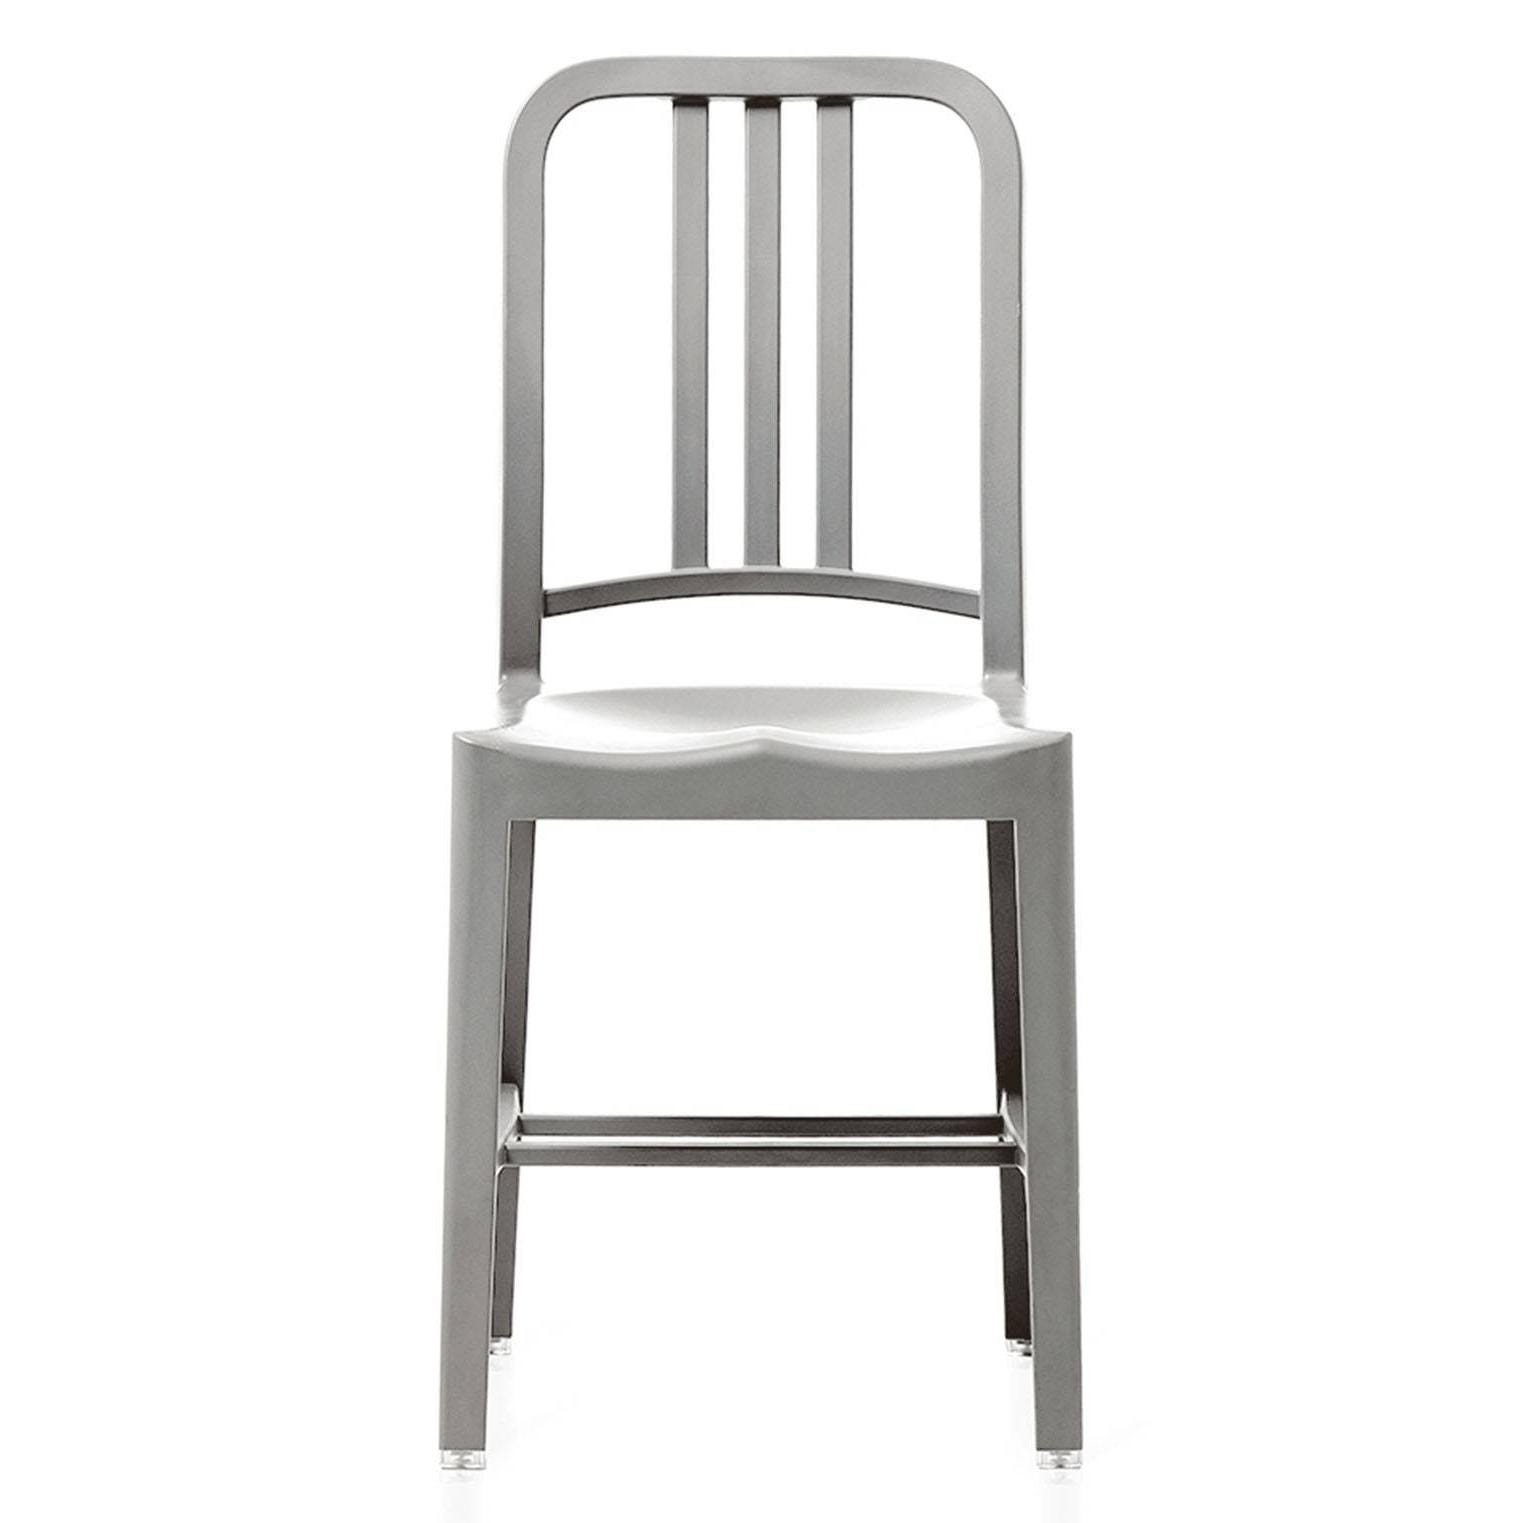 Emeco 111 Navy Chair (priced Each, Sold In Sets Of 2)   GR Shop Canada